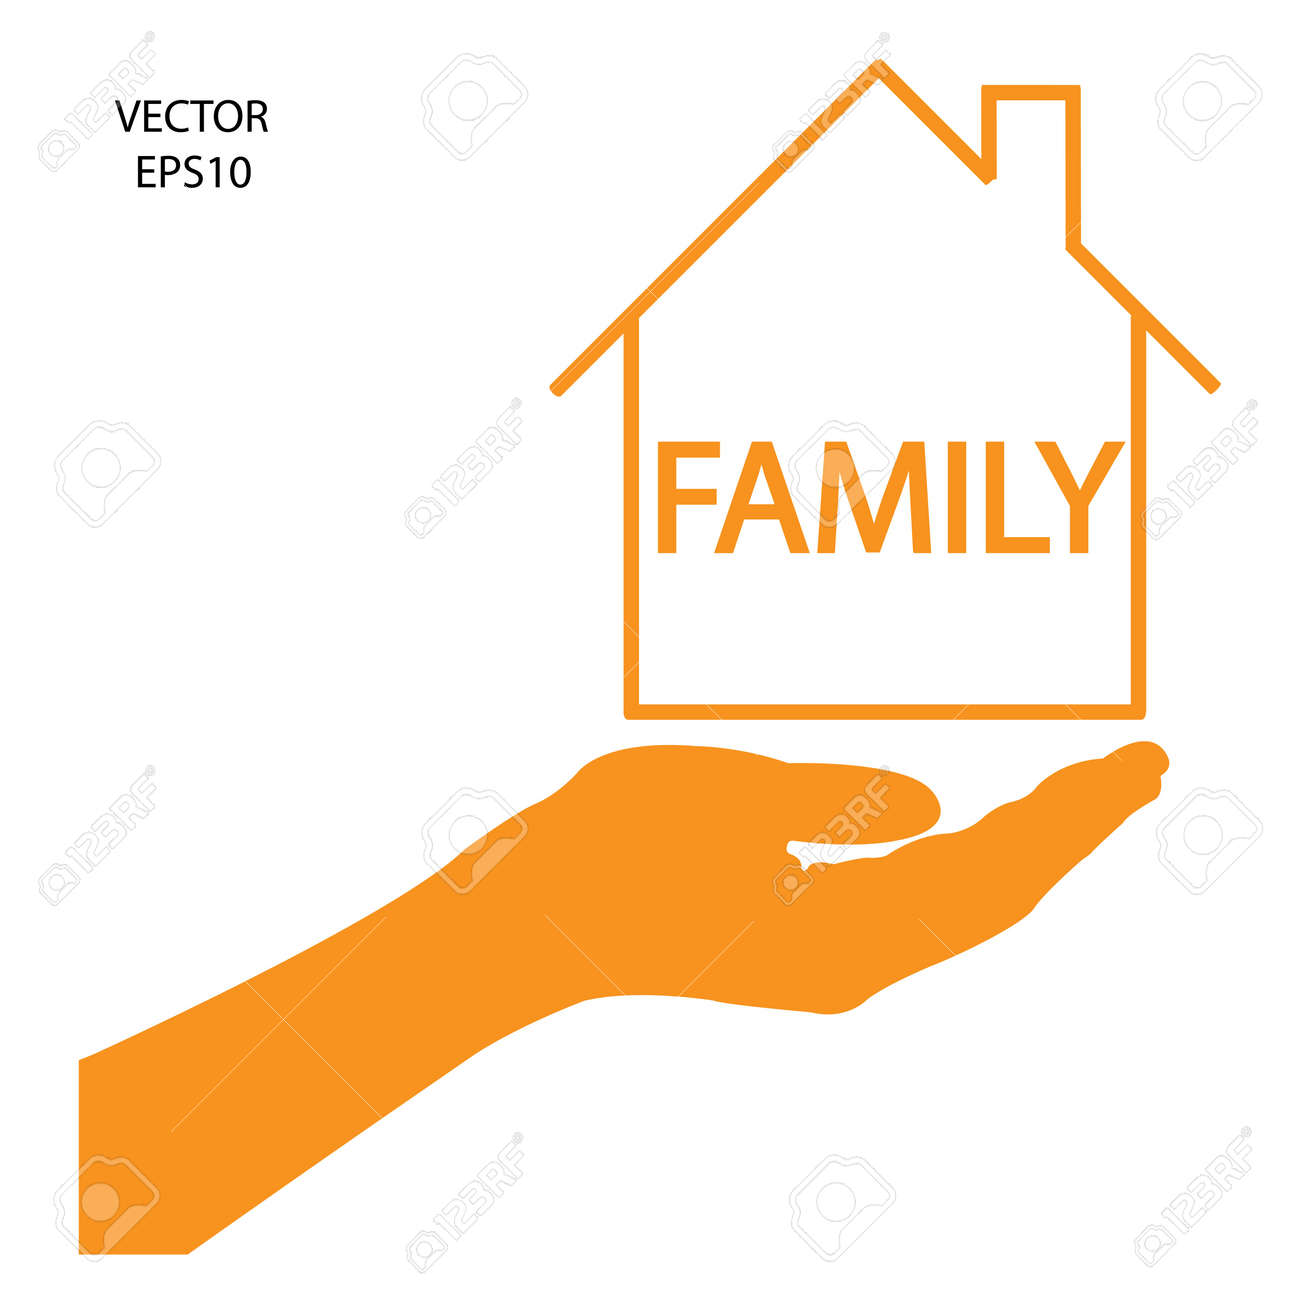 home under the hands icon,business symbol,concept of home decoration,concept of family Stock Vector - 18109592